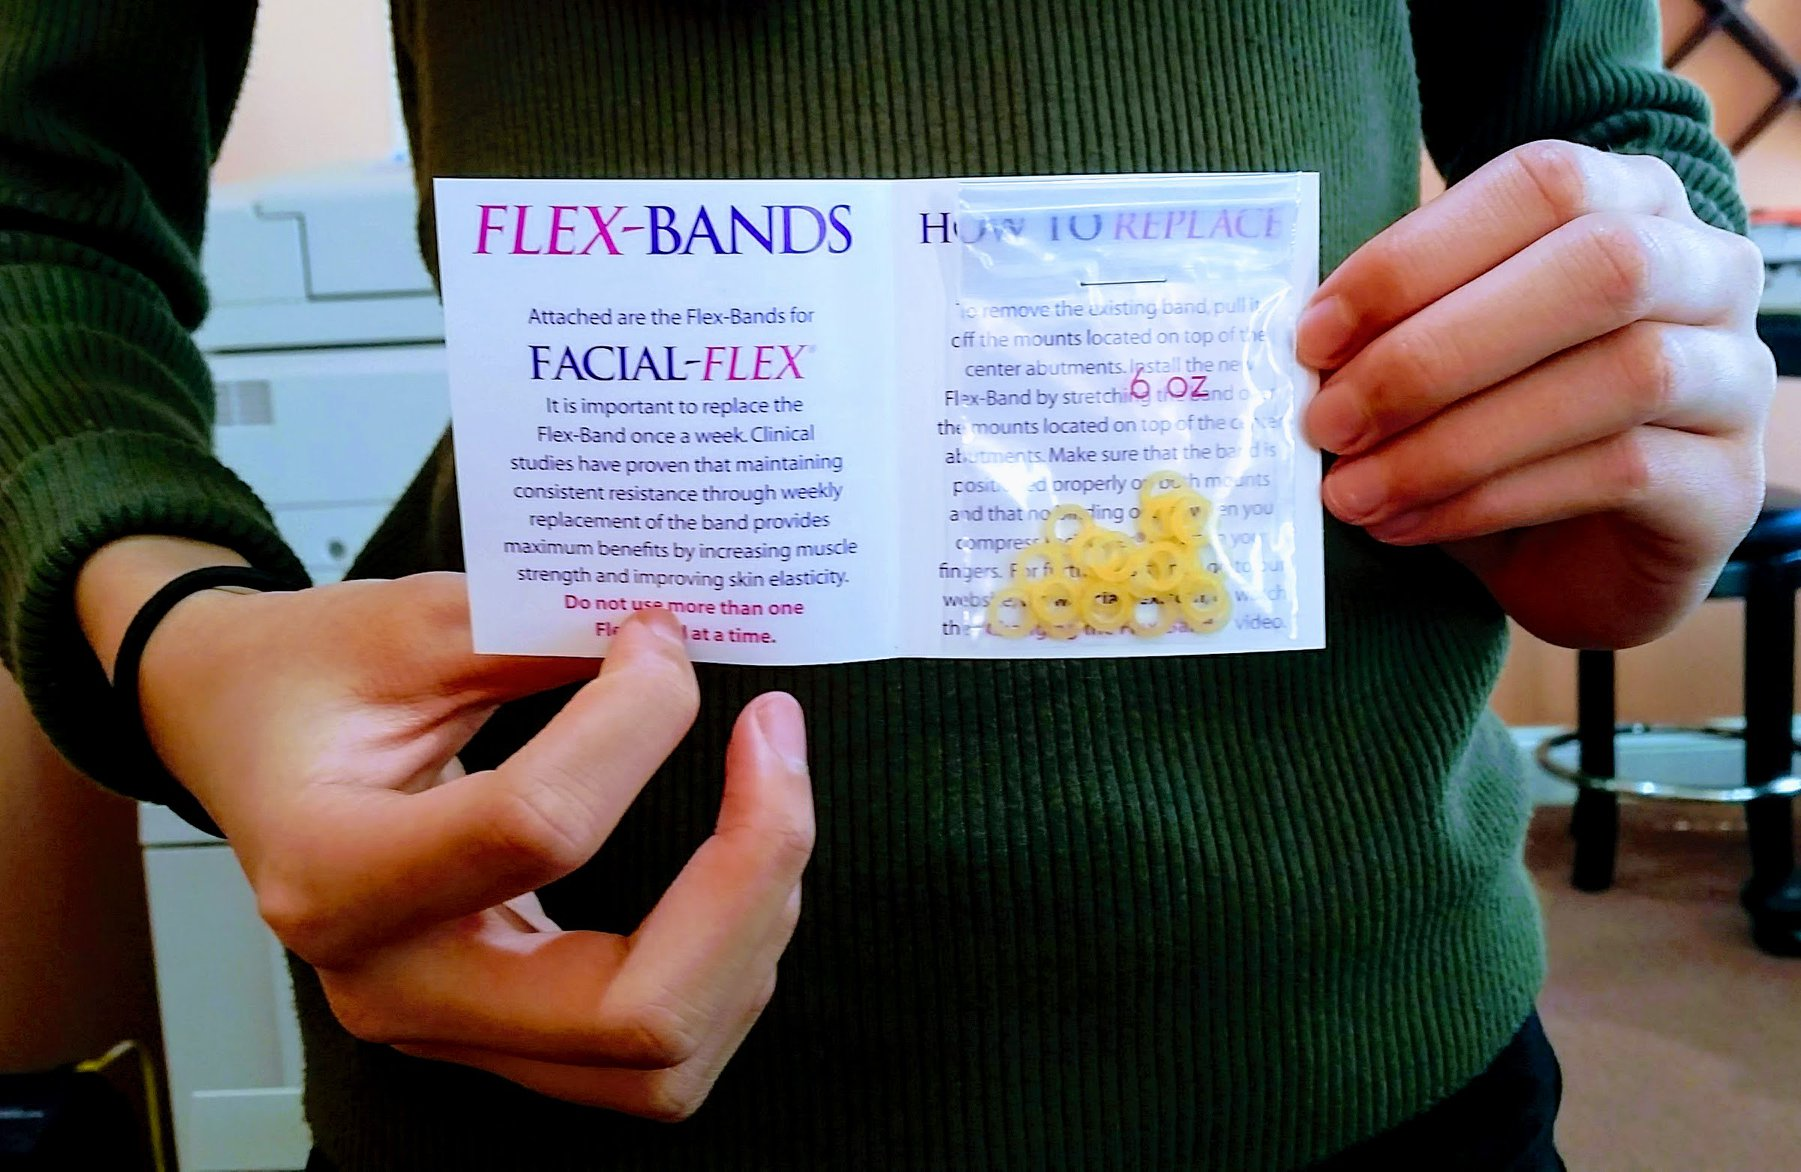 Flex-Bands